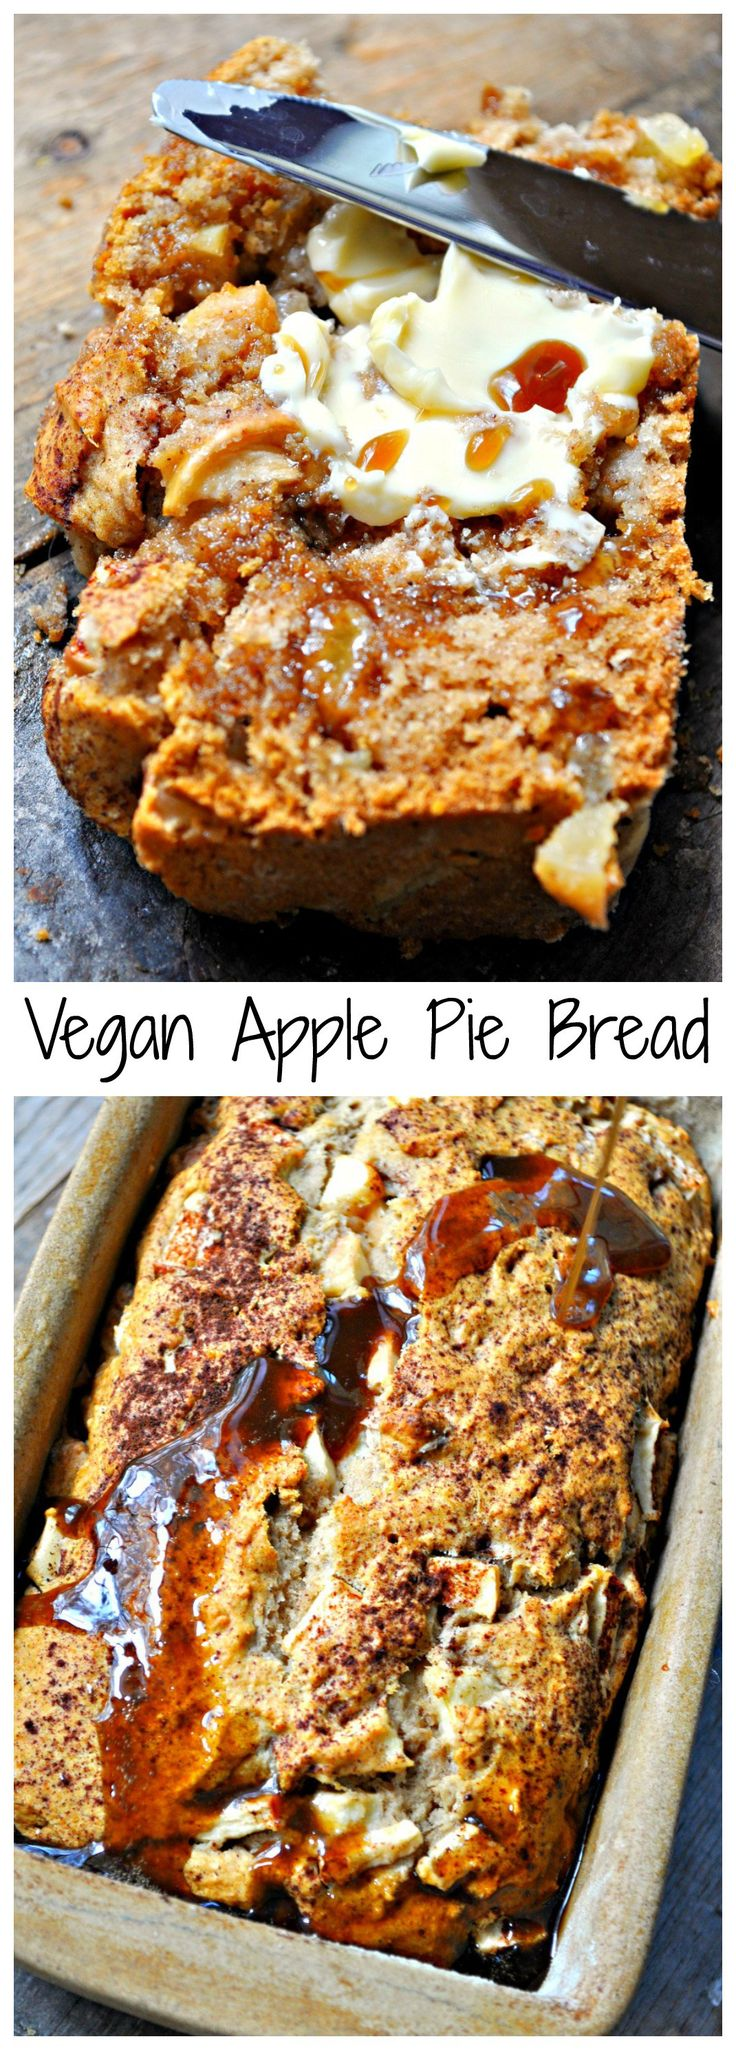 This vegan apple pie bread takes 1 bowl, 10 ingredients and is refined sugar free! Did I mention it tastes just like apple pie?!